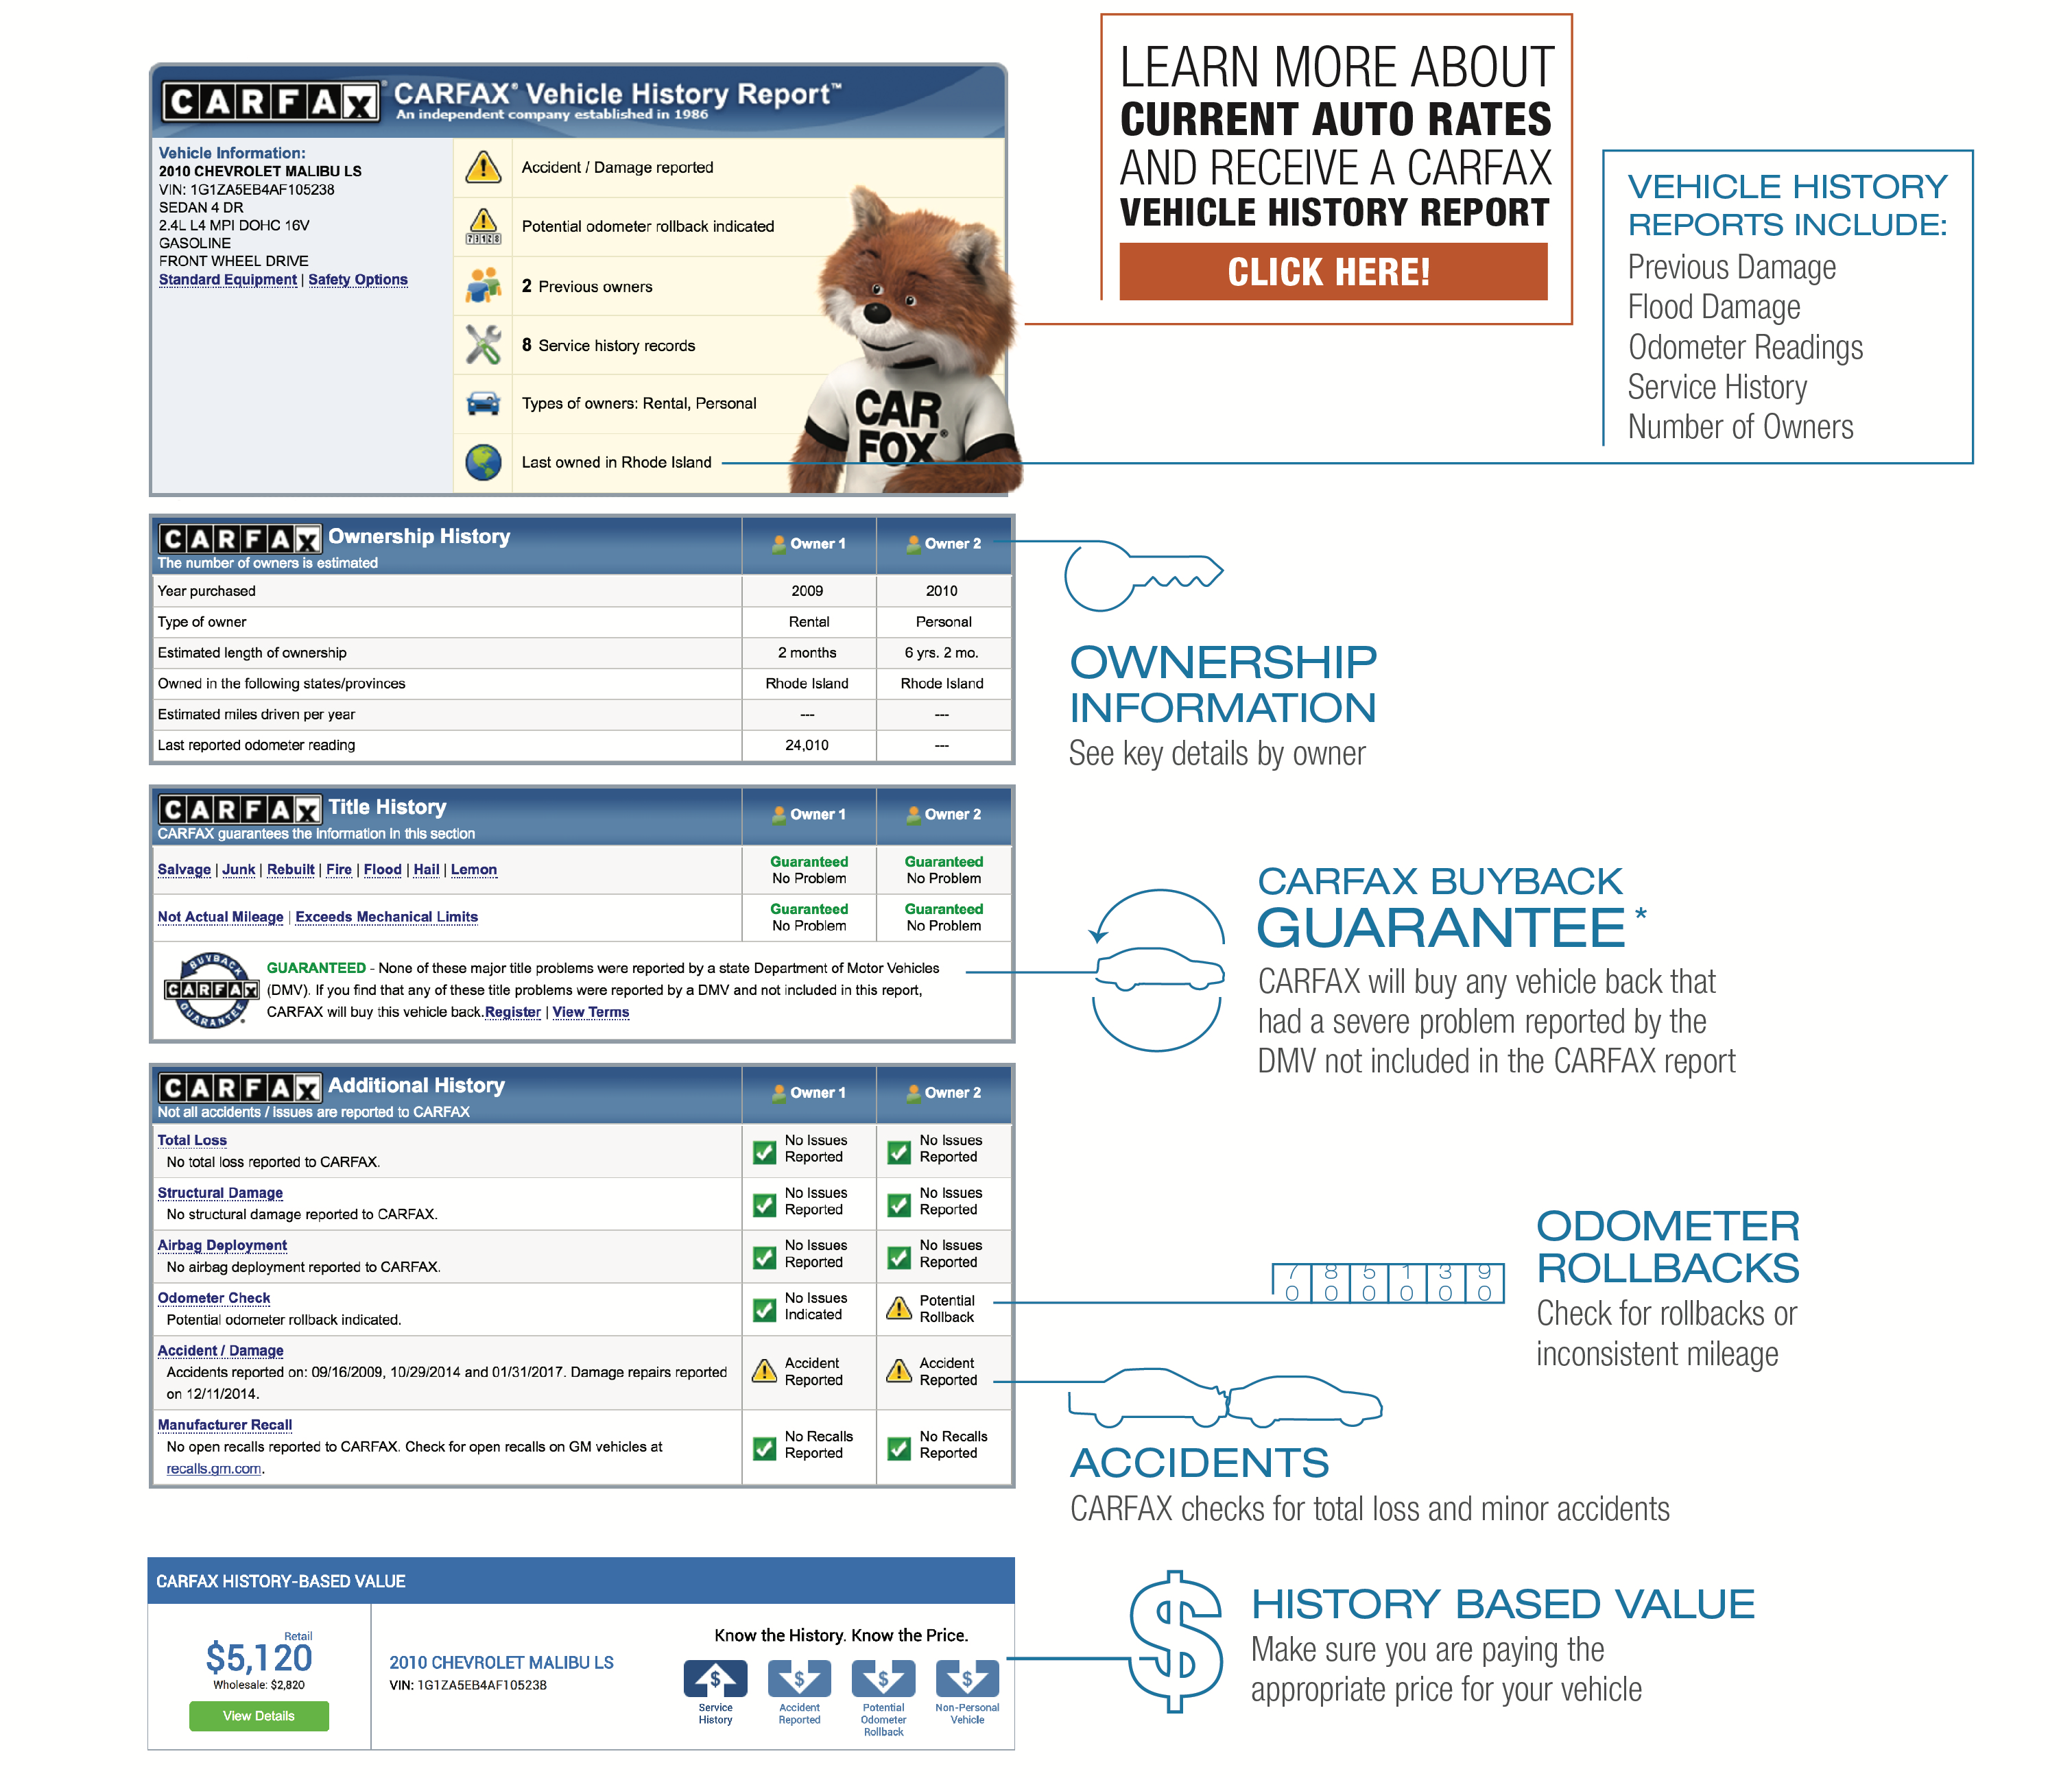 Free Vehicle History Report by Vin Best Of Carfax Banking and Insurance Group More Information Better Decisions